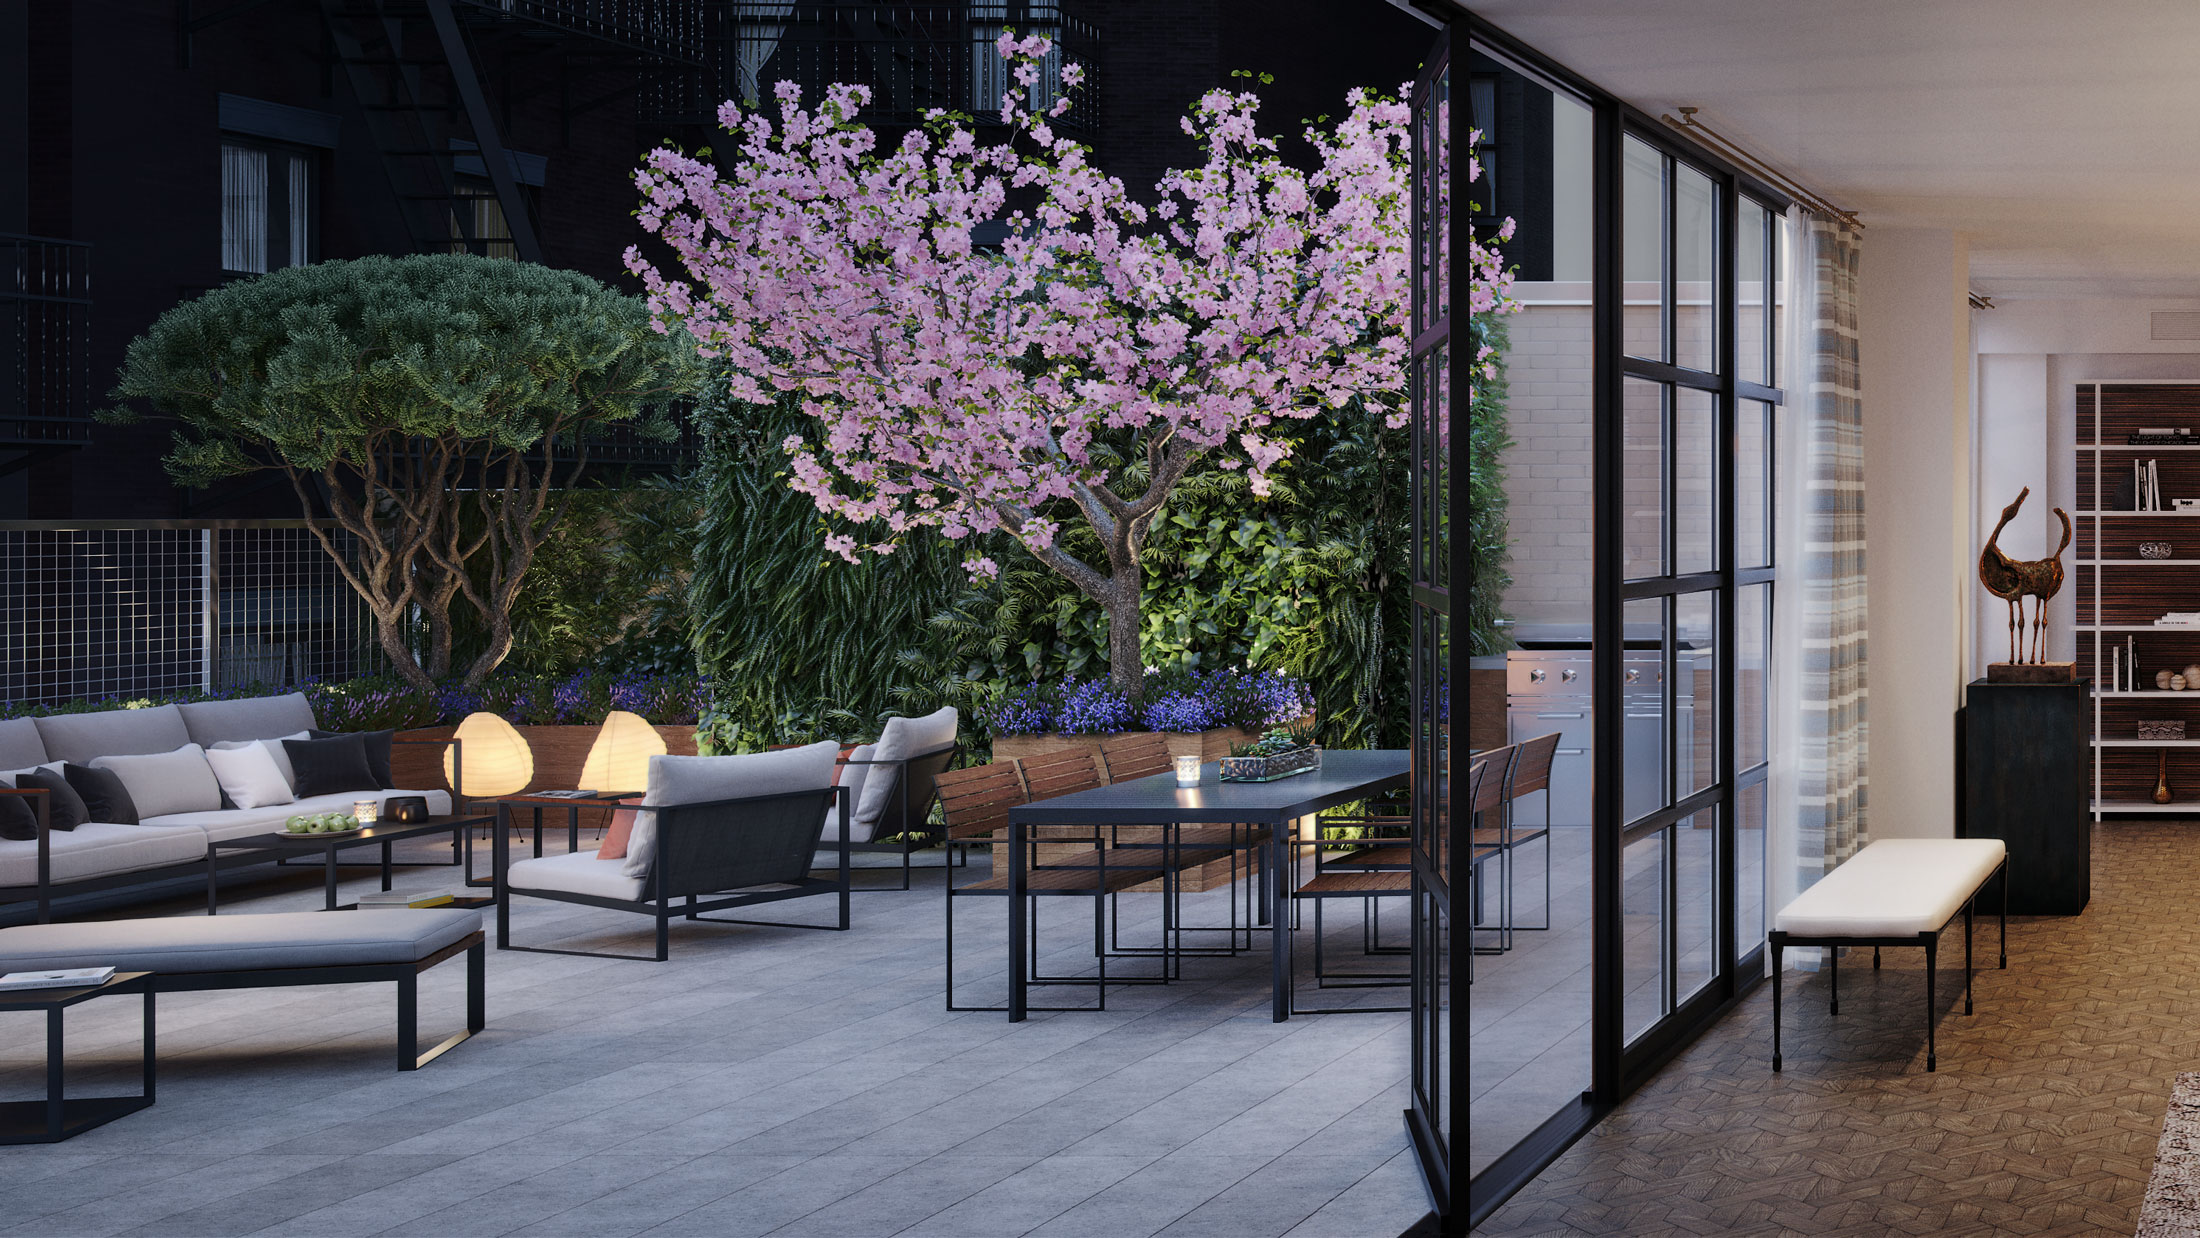 Architectural Rendering of the backyard of the 207 West 79th Street project located on the Upper West Side, New York City